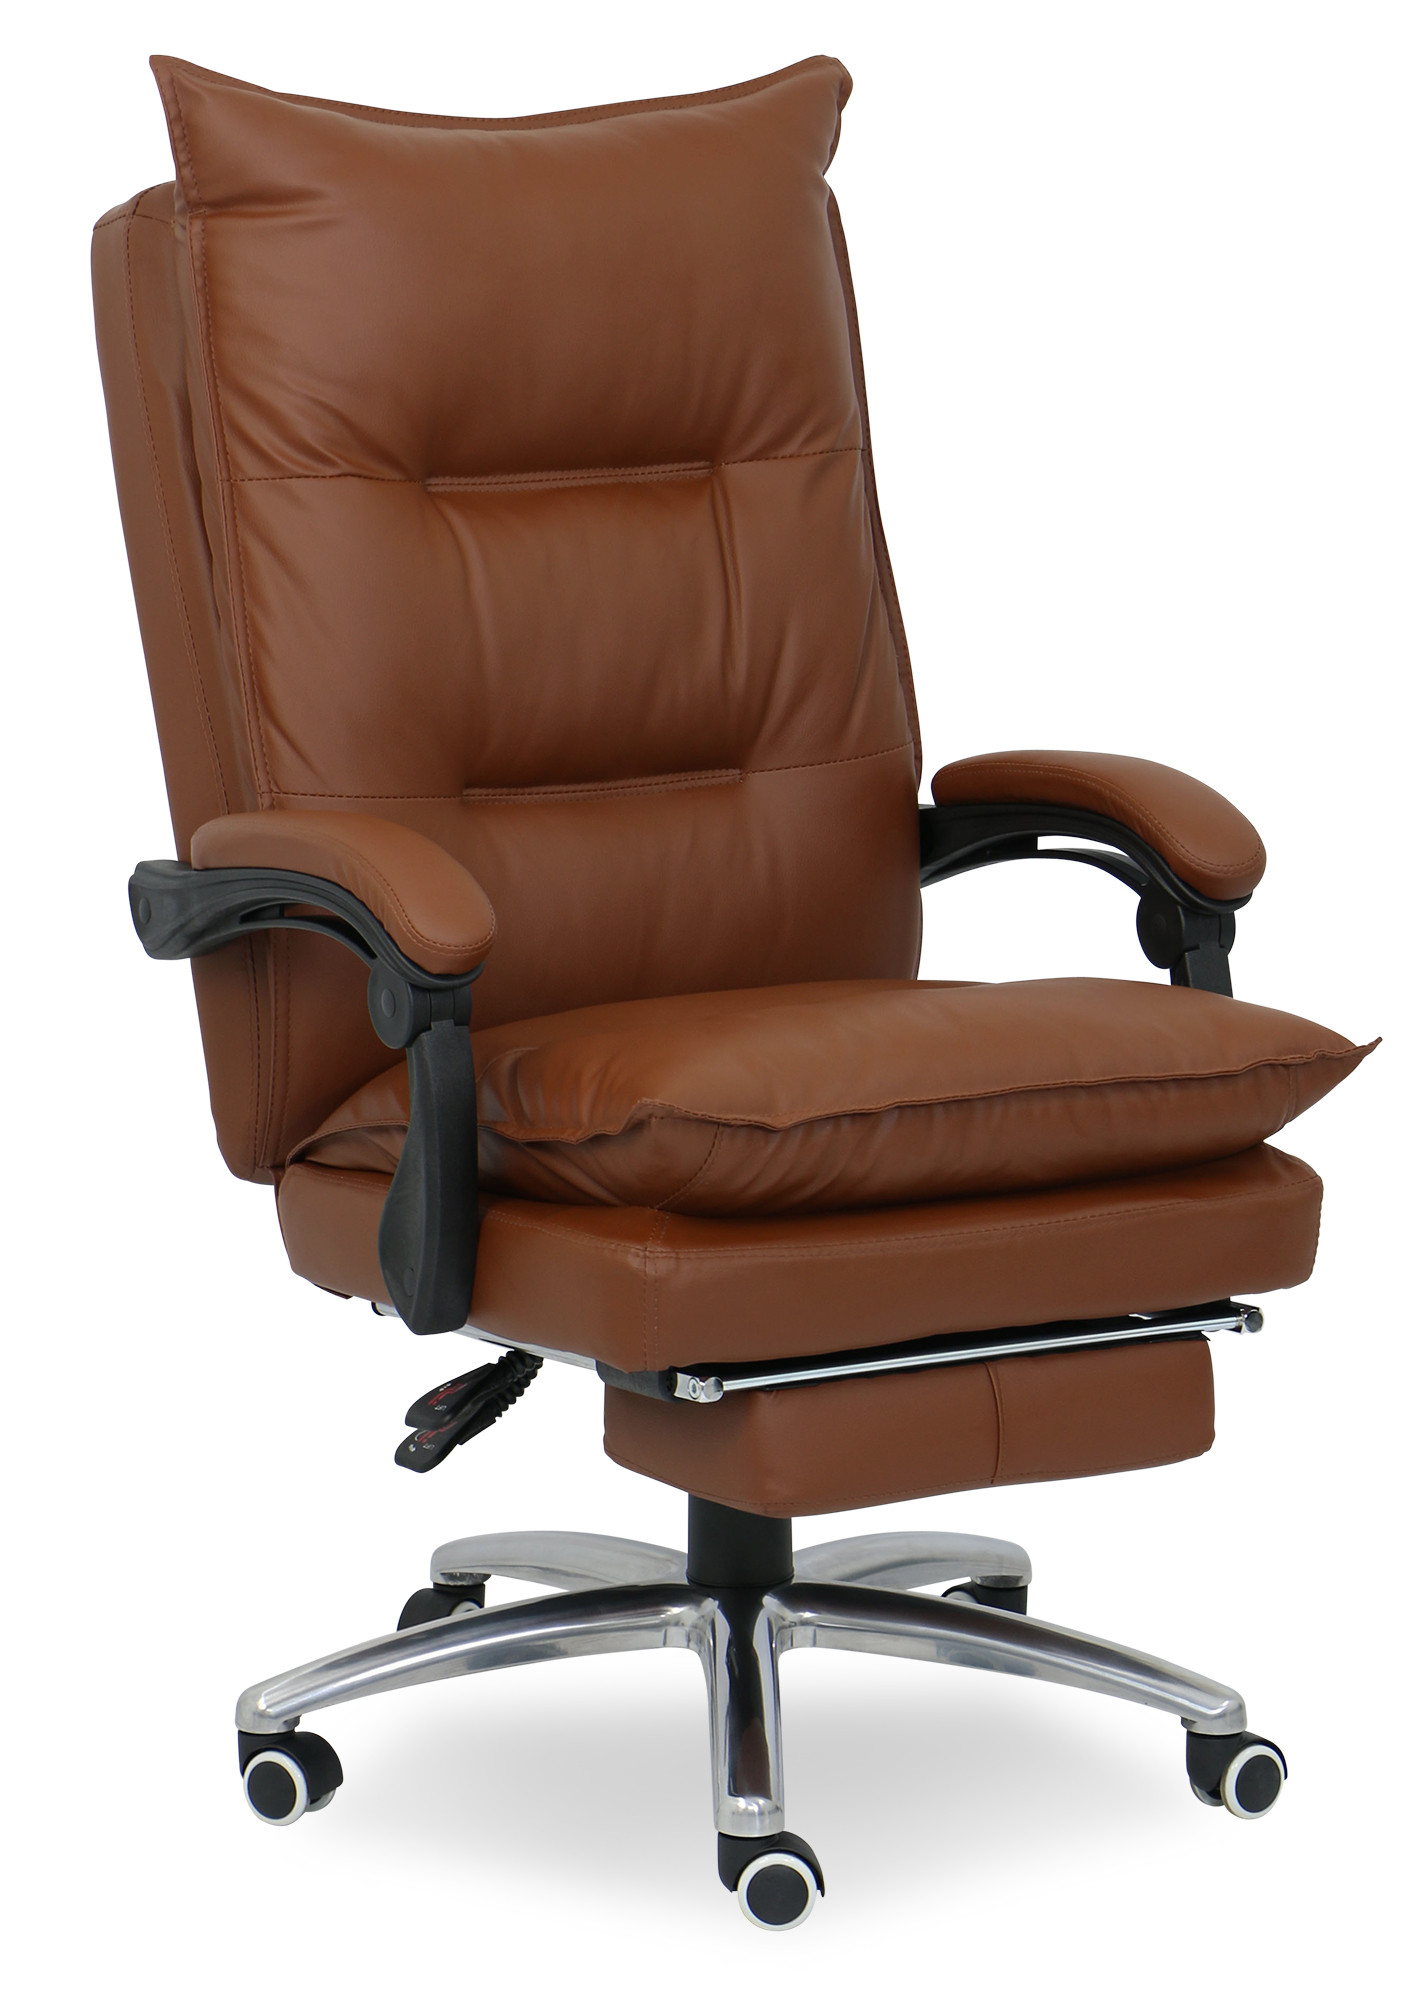 deluxe pu executive office chair brown furniture. Black Bedroom Furniture Sets. Home Design Ideas